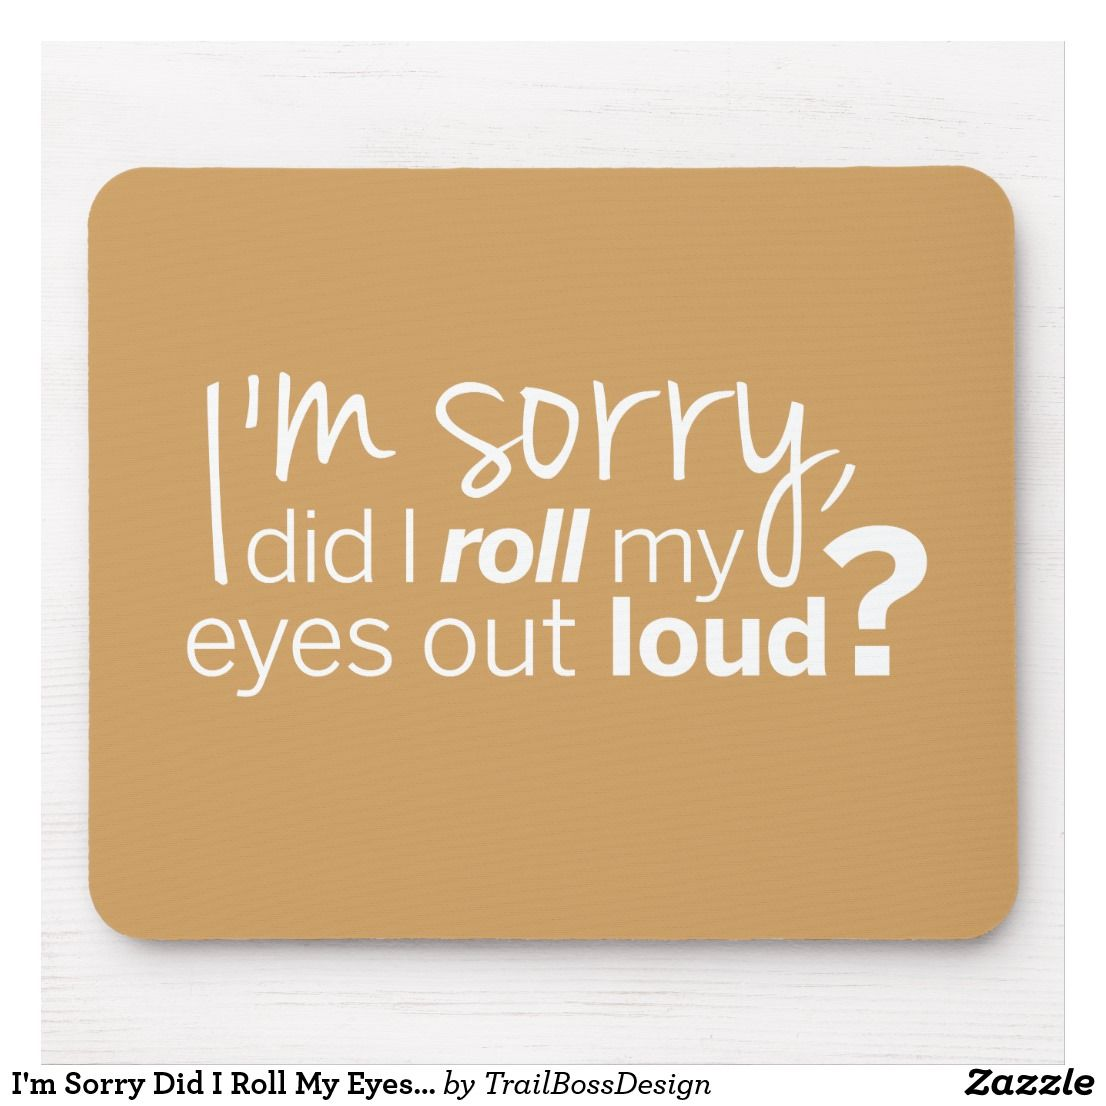 I'm Sorry Did I Roll My Eyes Out Loud? Mouse Pad   Zazzle.ca